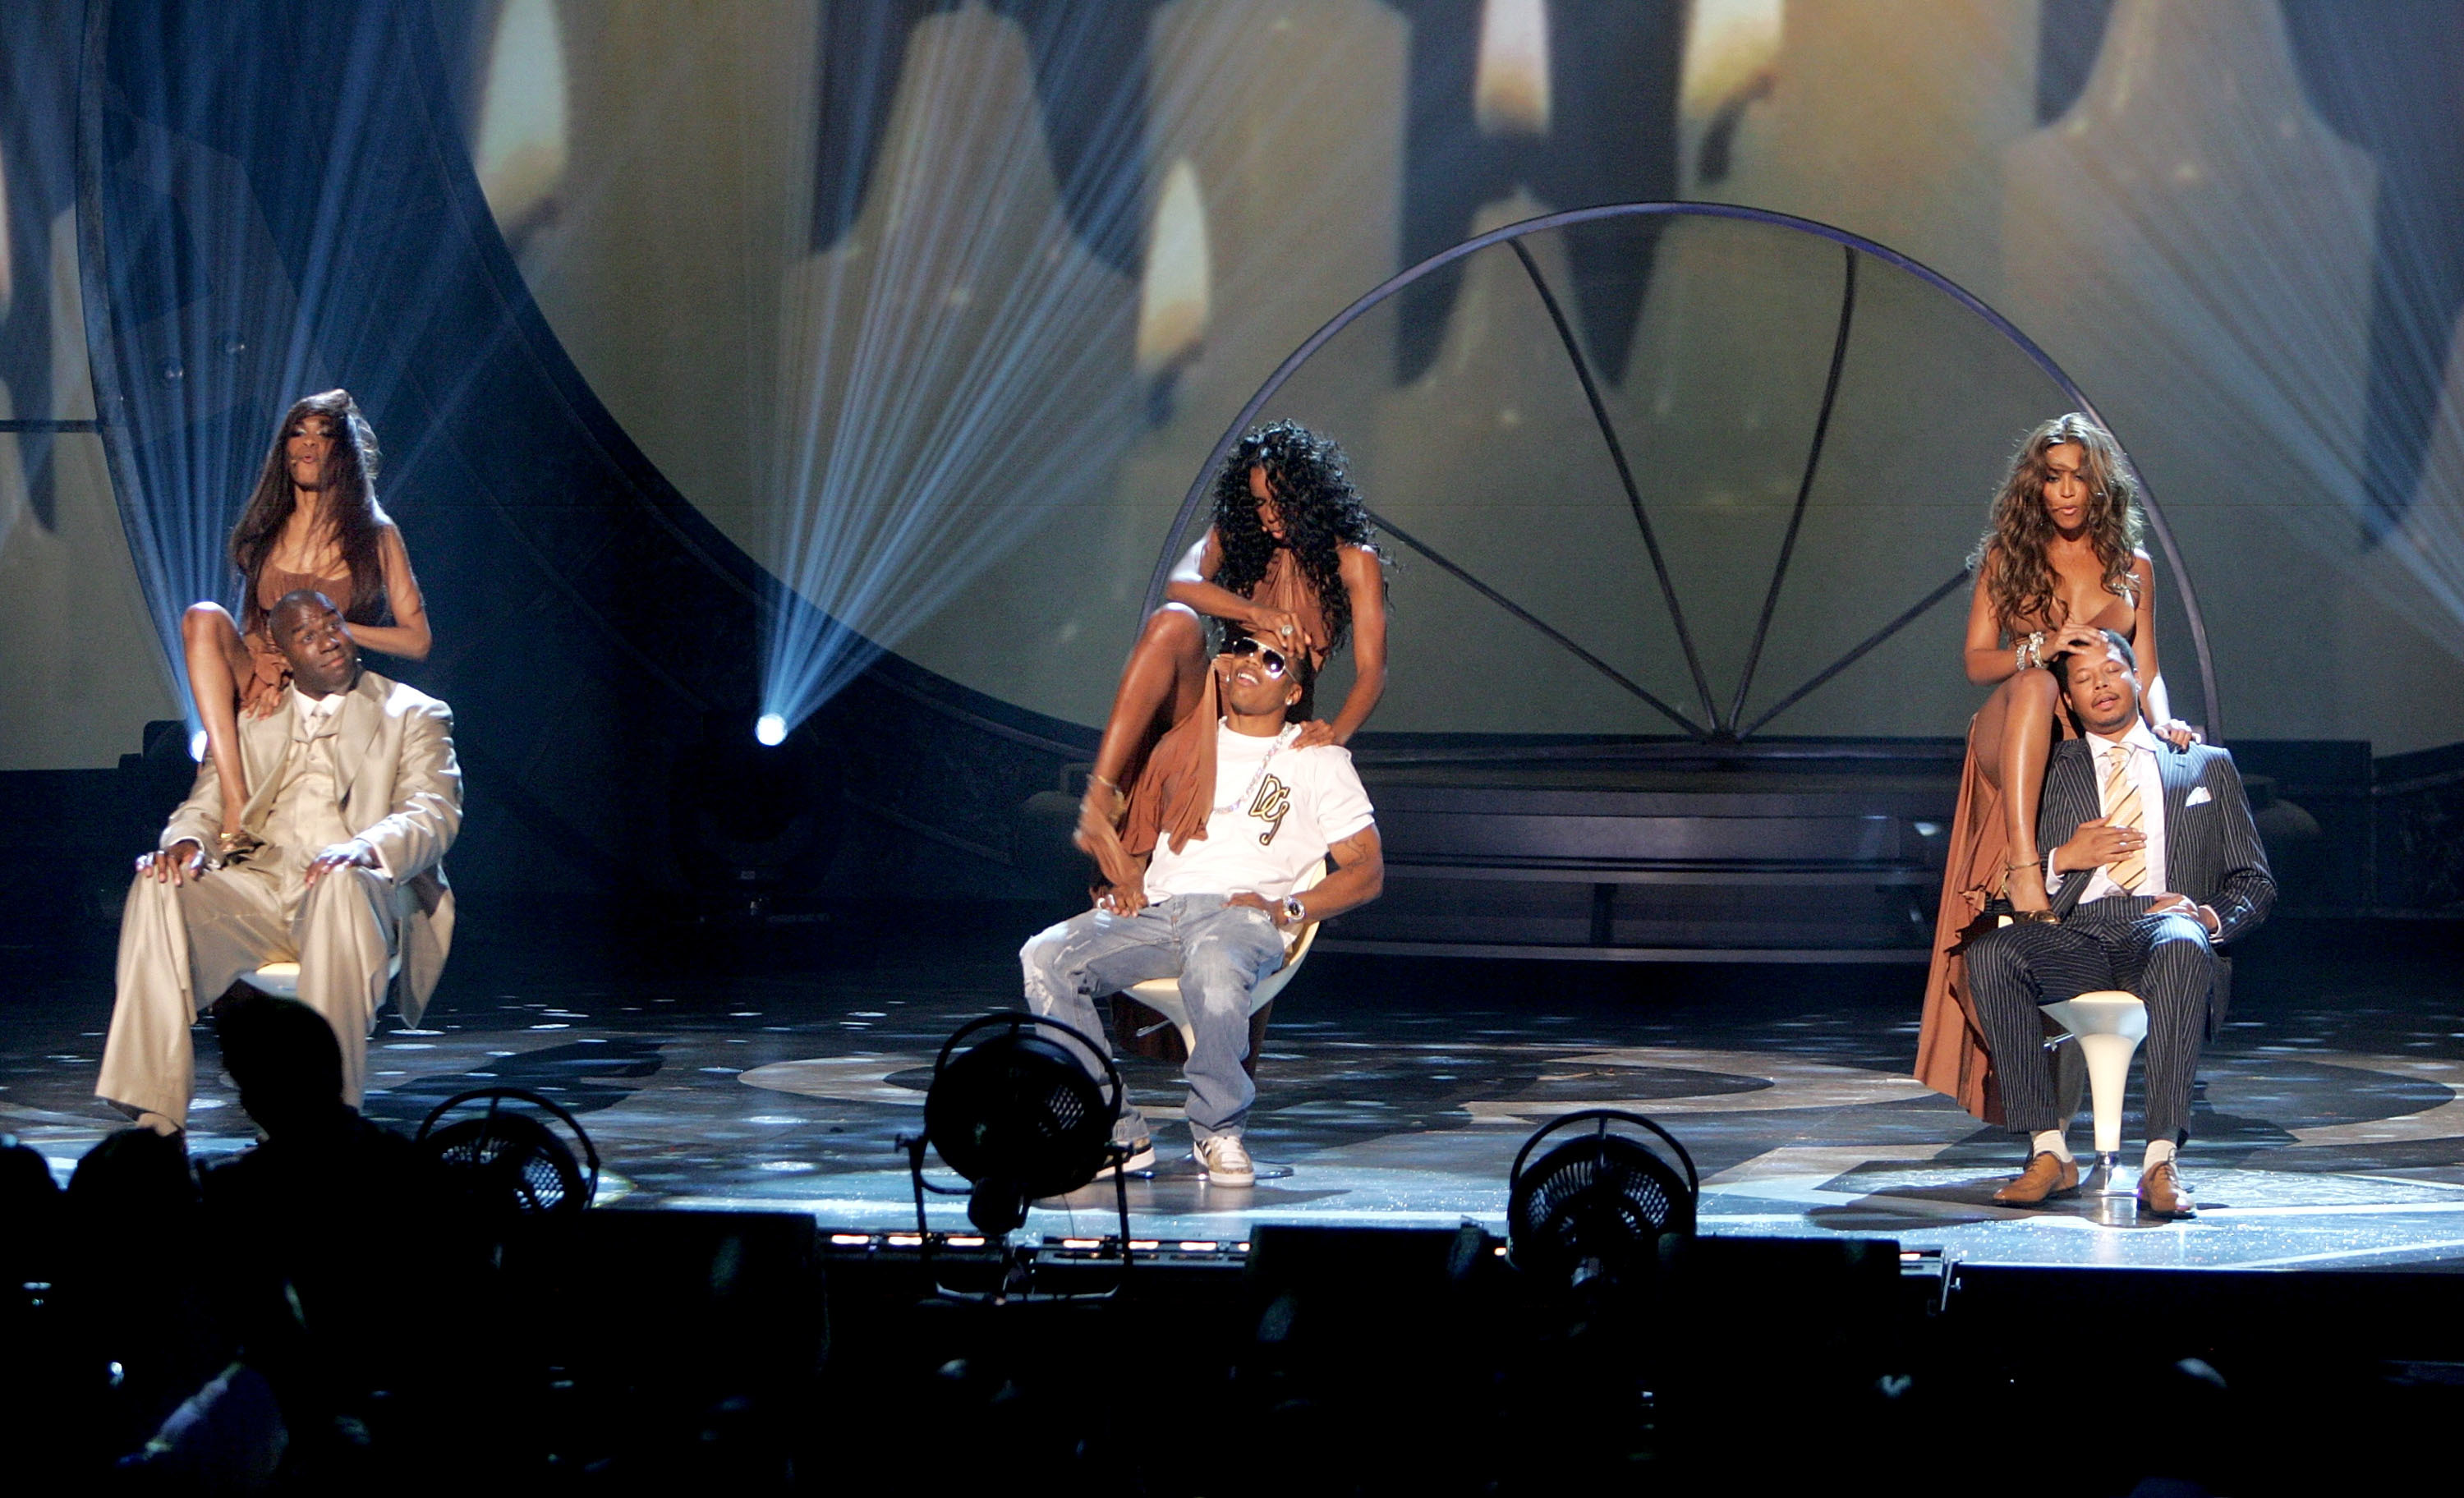 Destiny's Child, Michelle Williams, Kelly Rowland and Beyonce Knowles perform onstage with Magic Johnson, Nelly and Terrence Howard at the 2005 BET Awards at the Kodak Theatre in Hollywood, California on June 28, 2005.